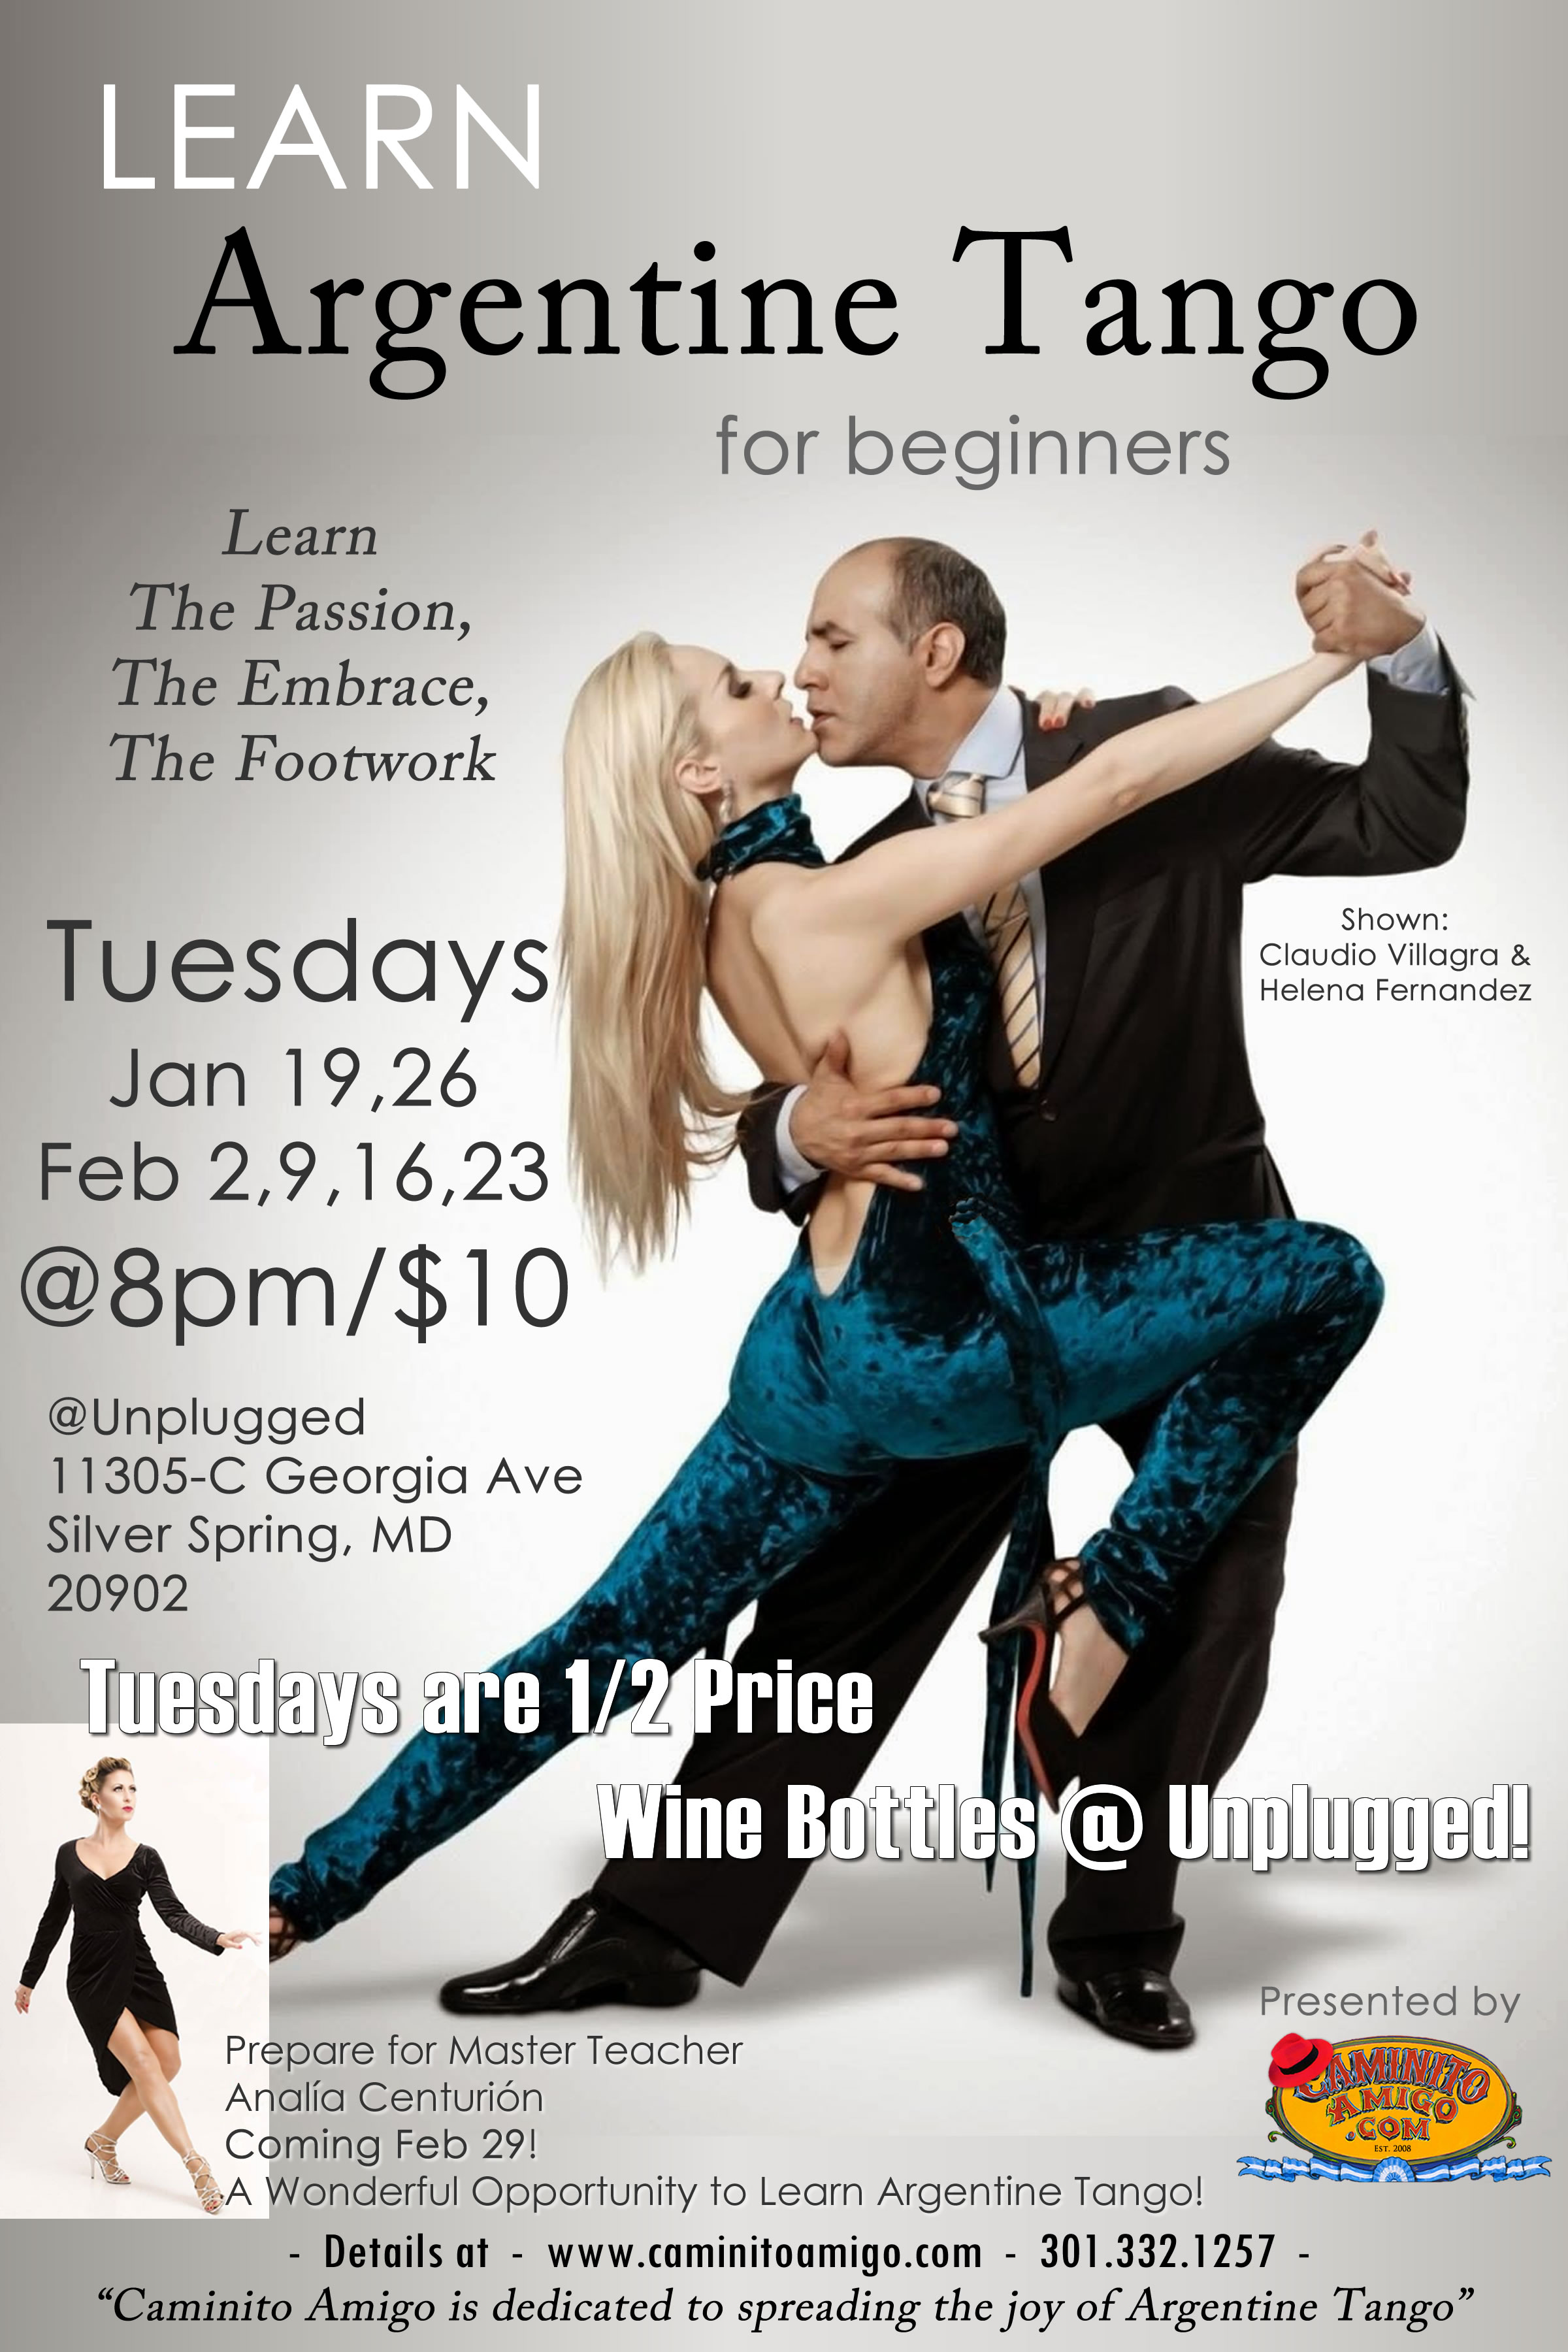 Learn Argentine Tango for beginners Poster